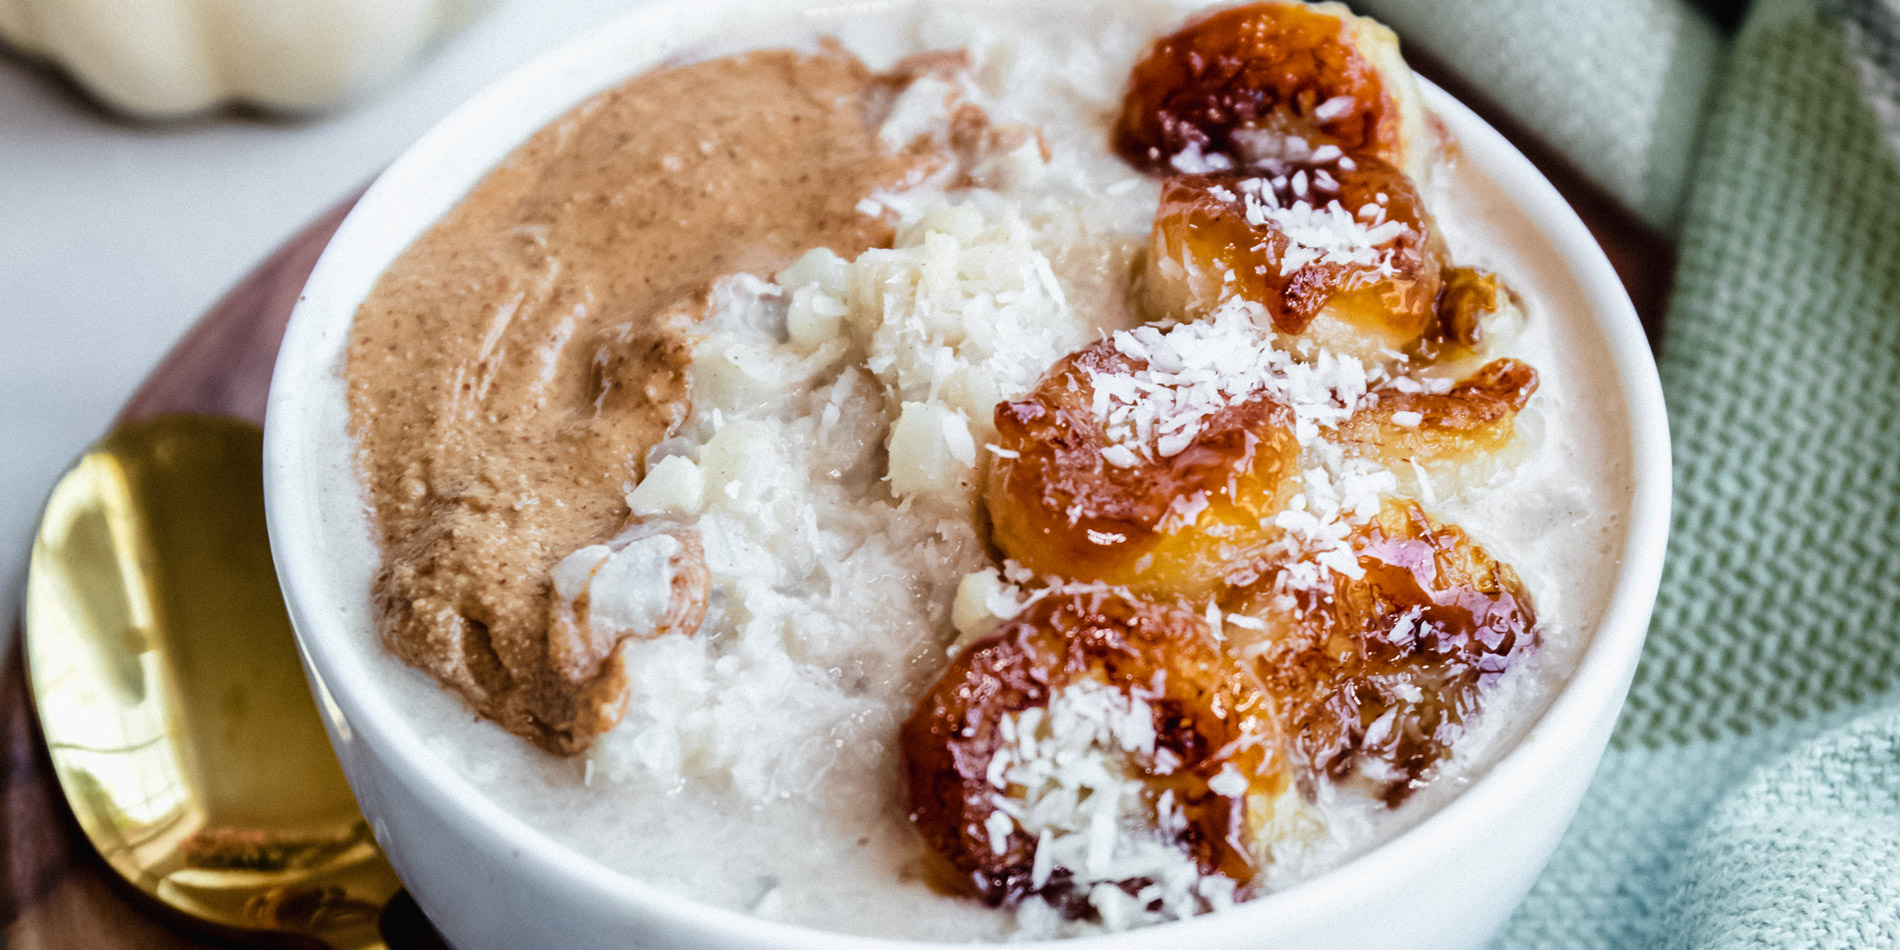 Grain Free Coconut Cauliflower Oats with Caramelized Bananas on a wood bowl with a gold spoon on a white background